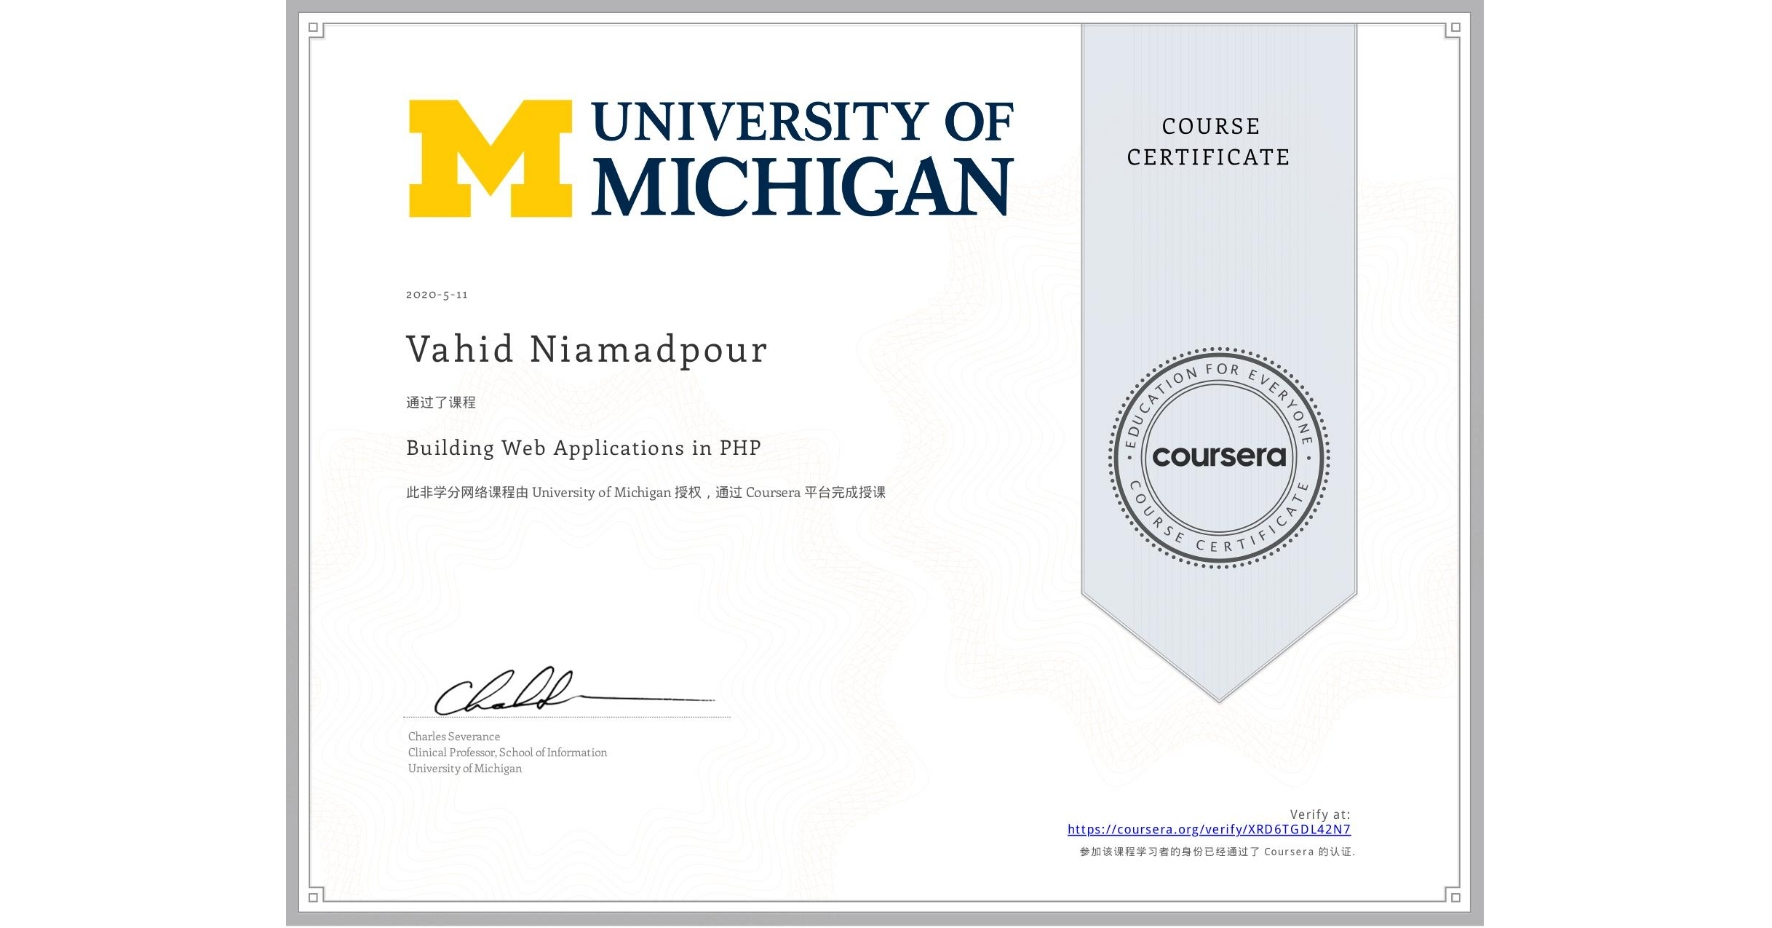 View certificate for Vahid Niamadpour, Building Web Applications in PHP, an online non-credit course authorized by University of Michigan and offered through Coursera